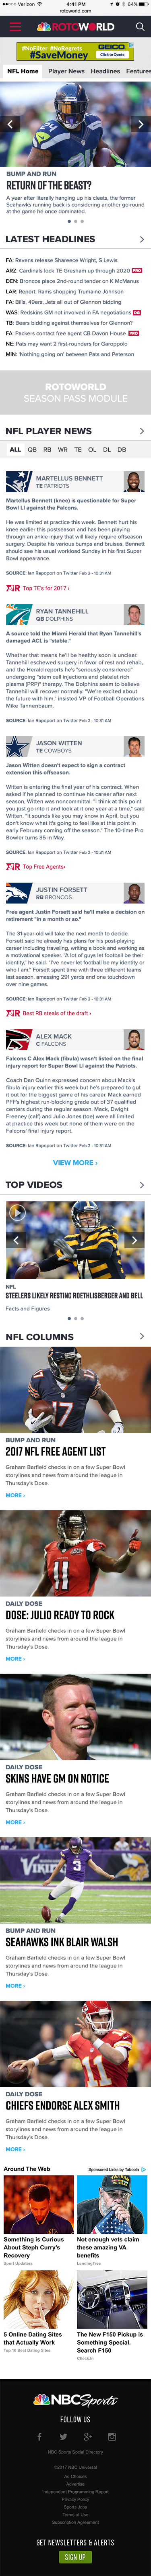 2018 NBC Sports RotoWorld Mobile Redesign